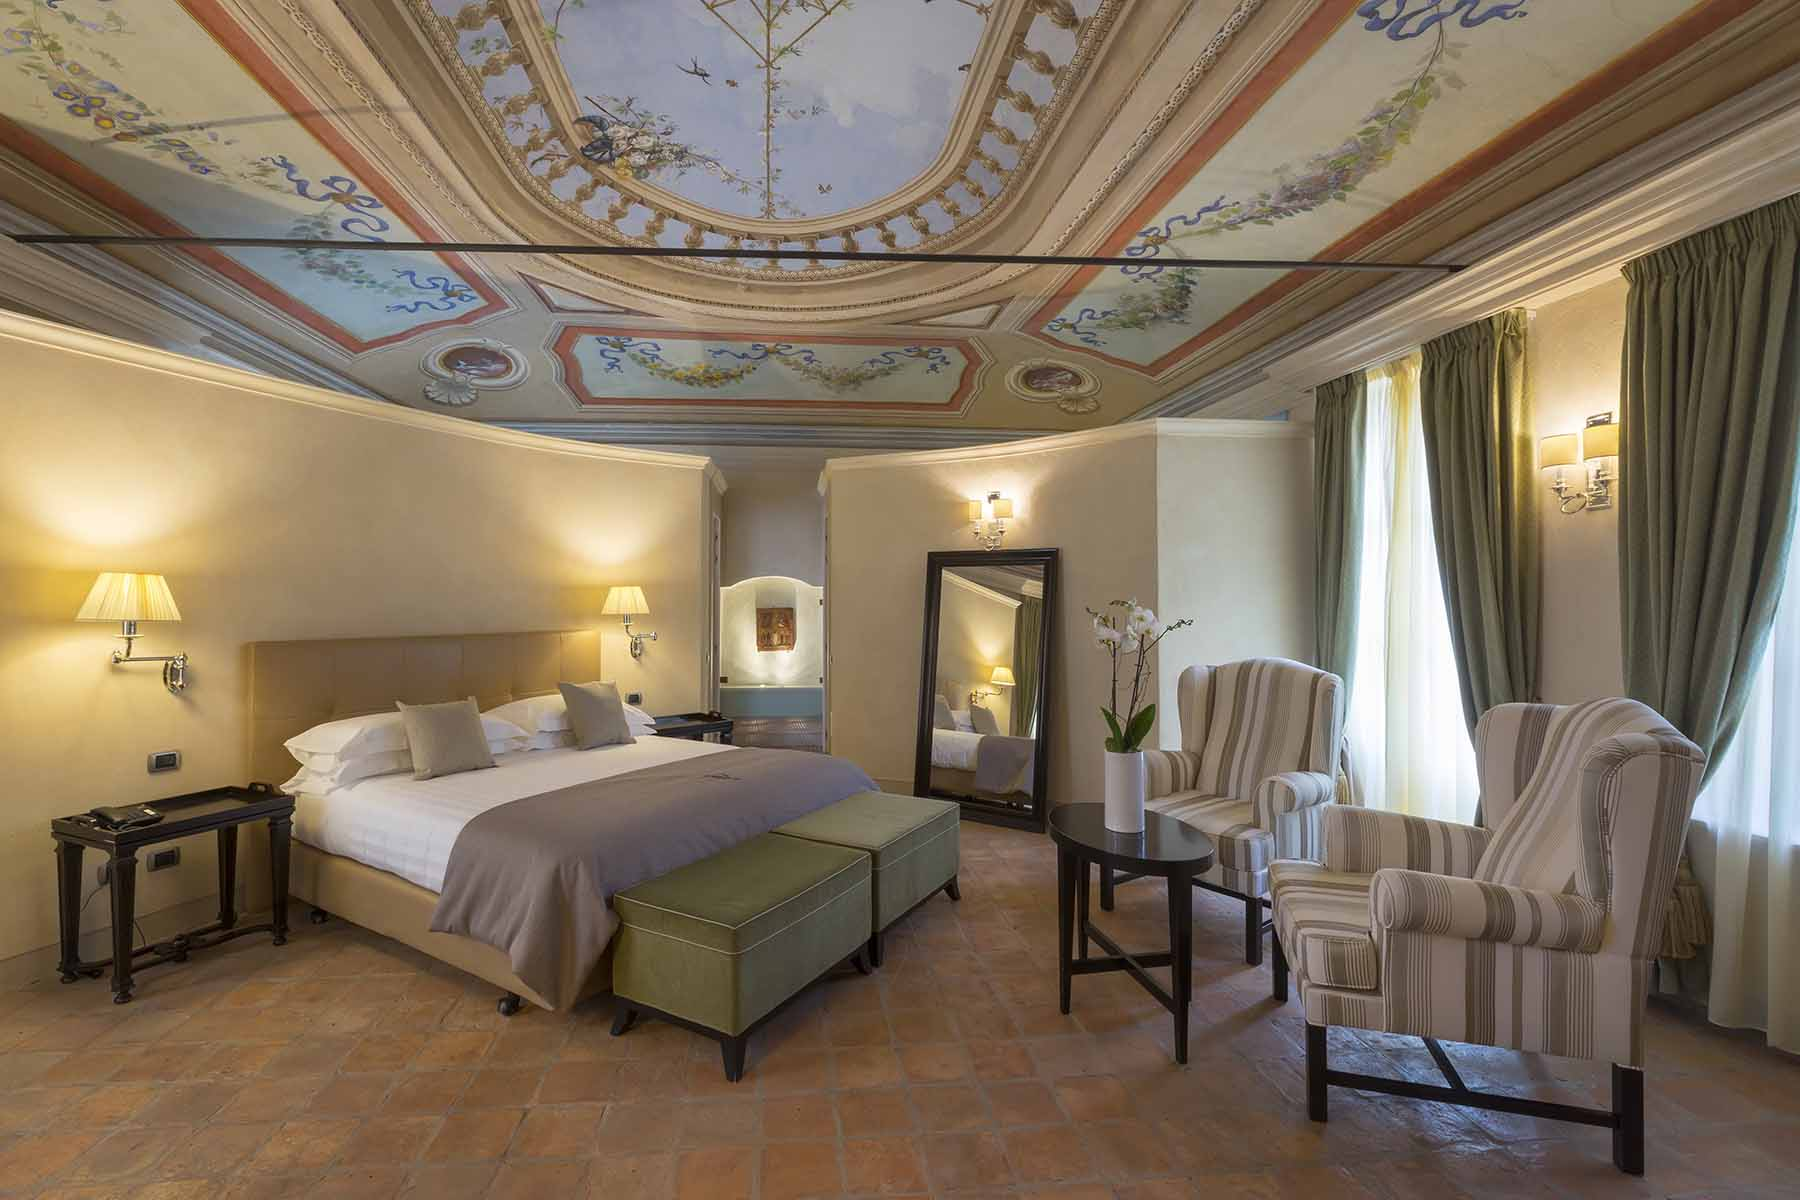 Spa hotell ved Asti i Piemonte